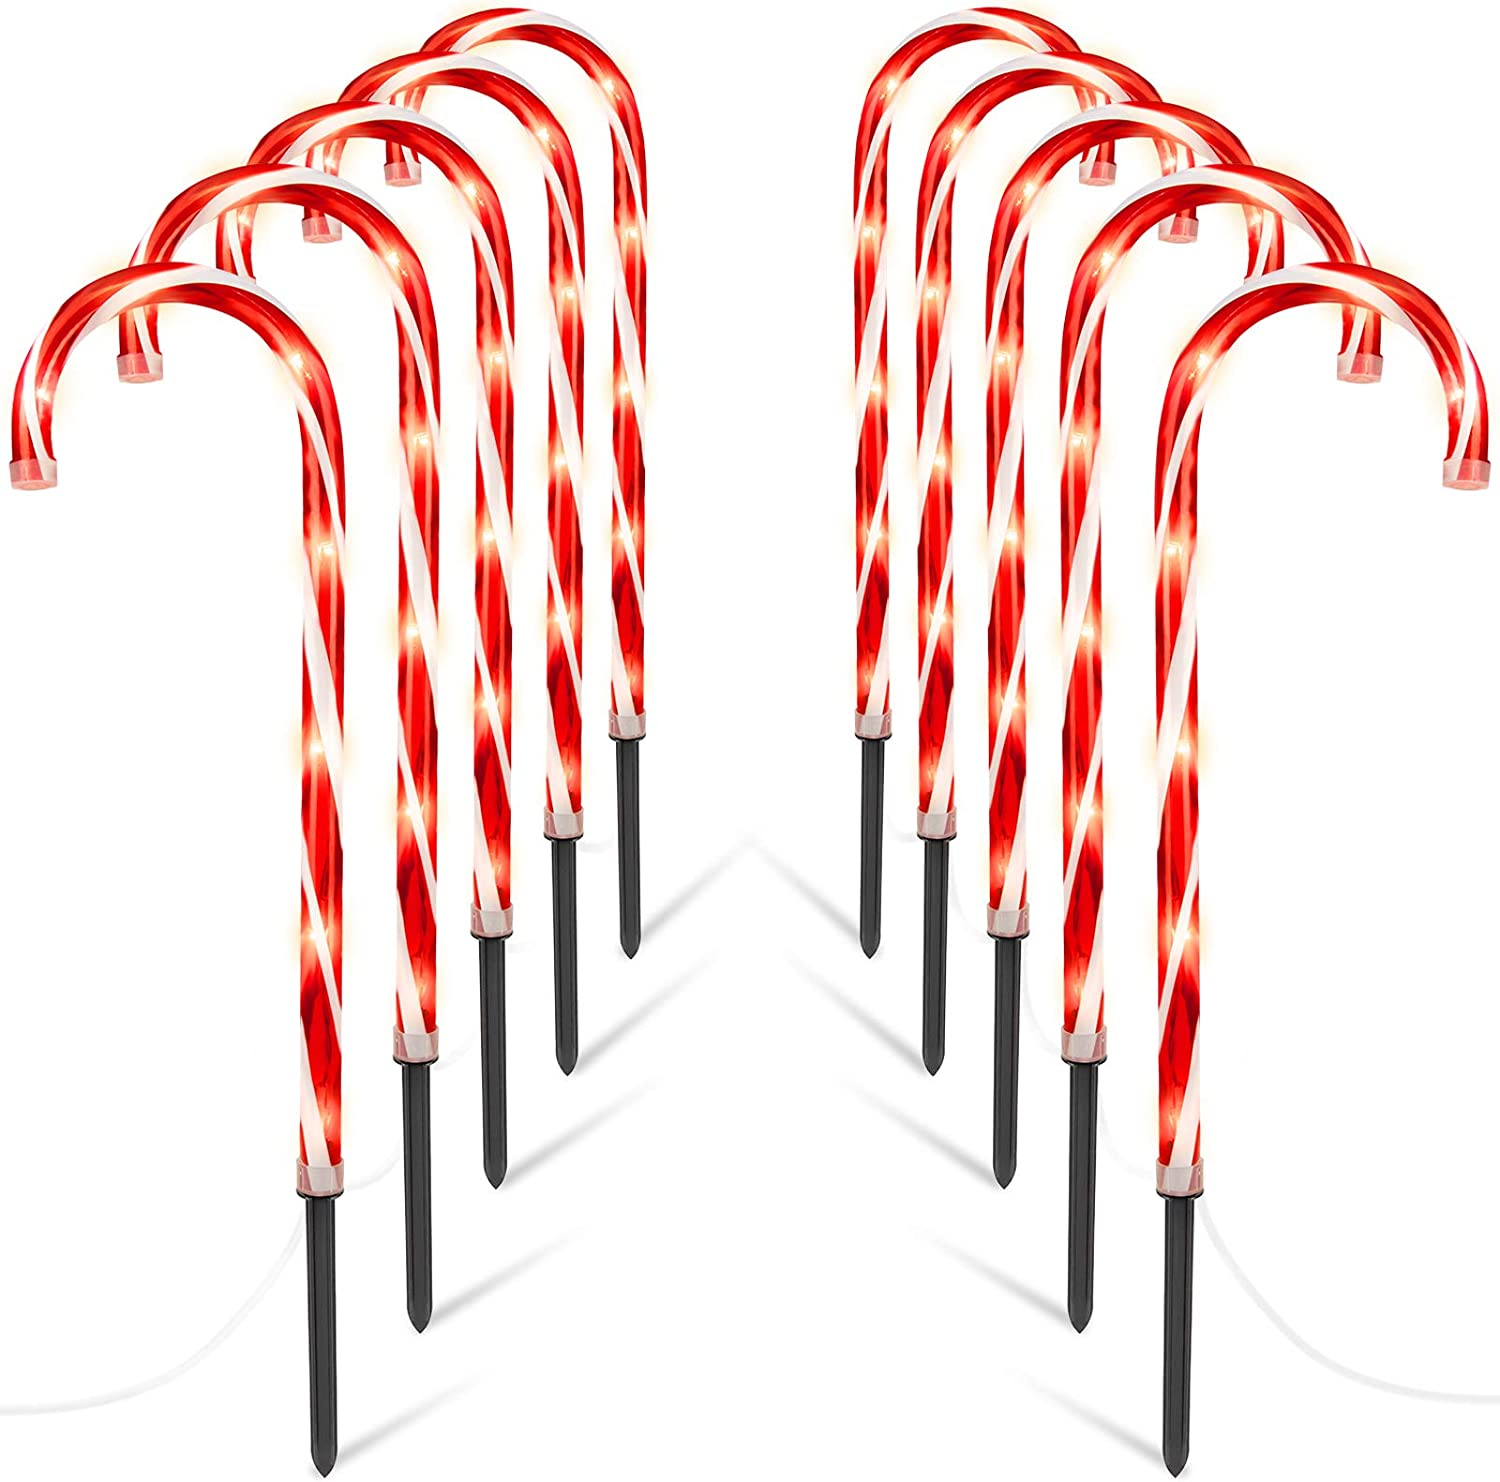 Candy Cane Pathway Markers Lights - Brightown 10 Pack 28